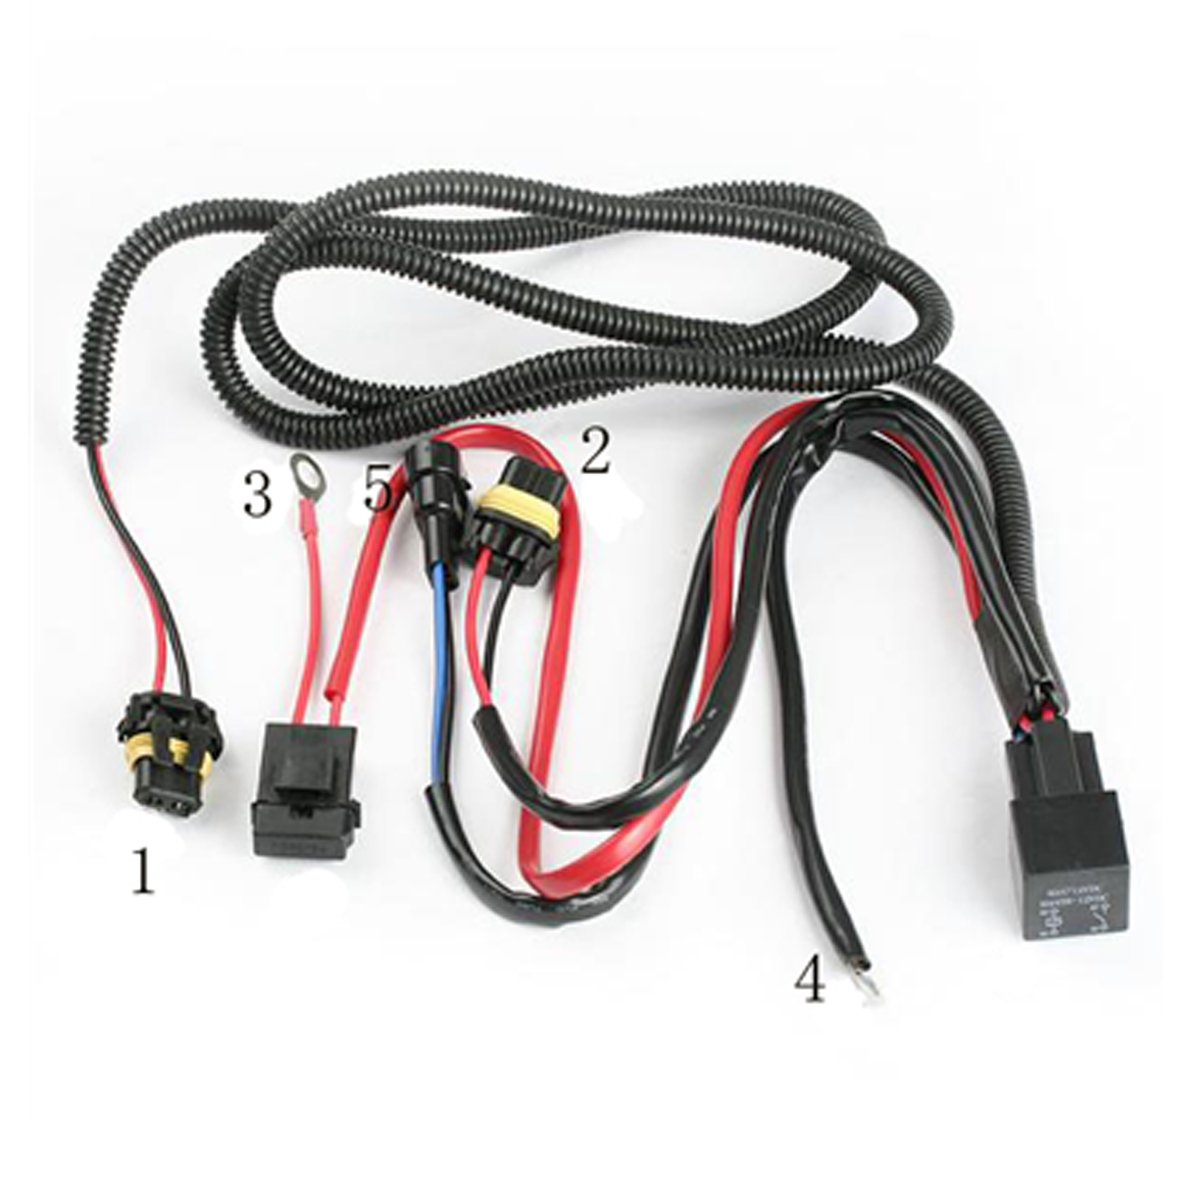 hight resolution of kensun hid relay harness install 32 wiring diagram 01 maxima ignition harness bosch relay harness